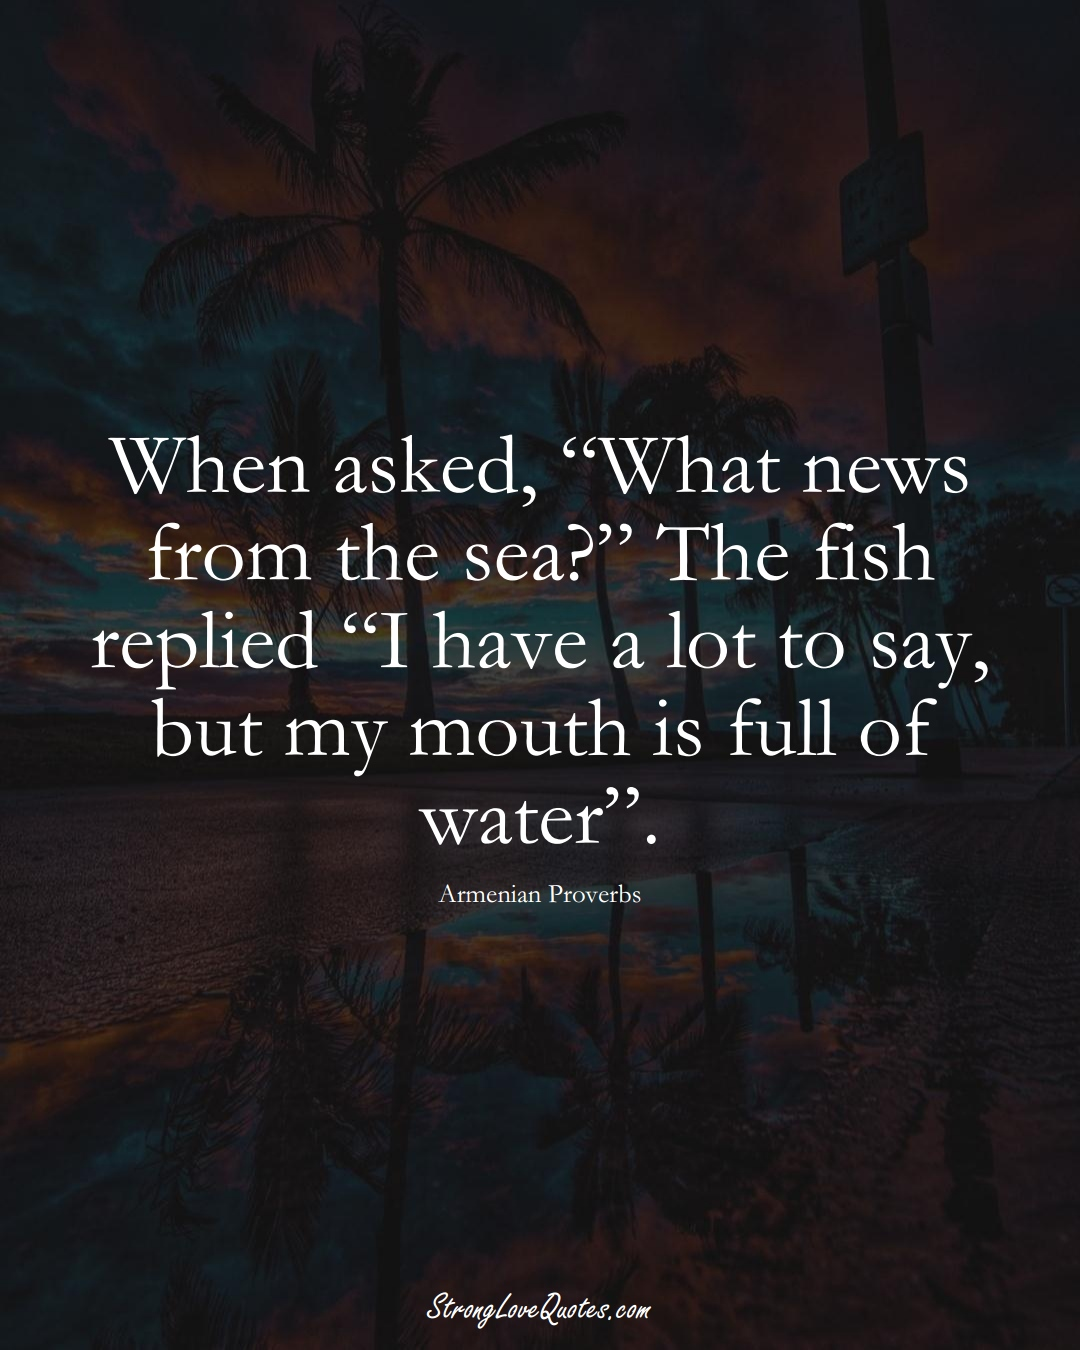 """When asked, """"What news from the sea?"""" The fish replied """"I have a lot to say, but my mouth is full of water"""". (Armenian Sayings);  #AsianSayings"""